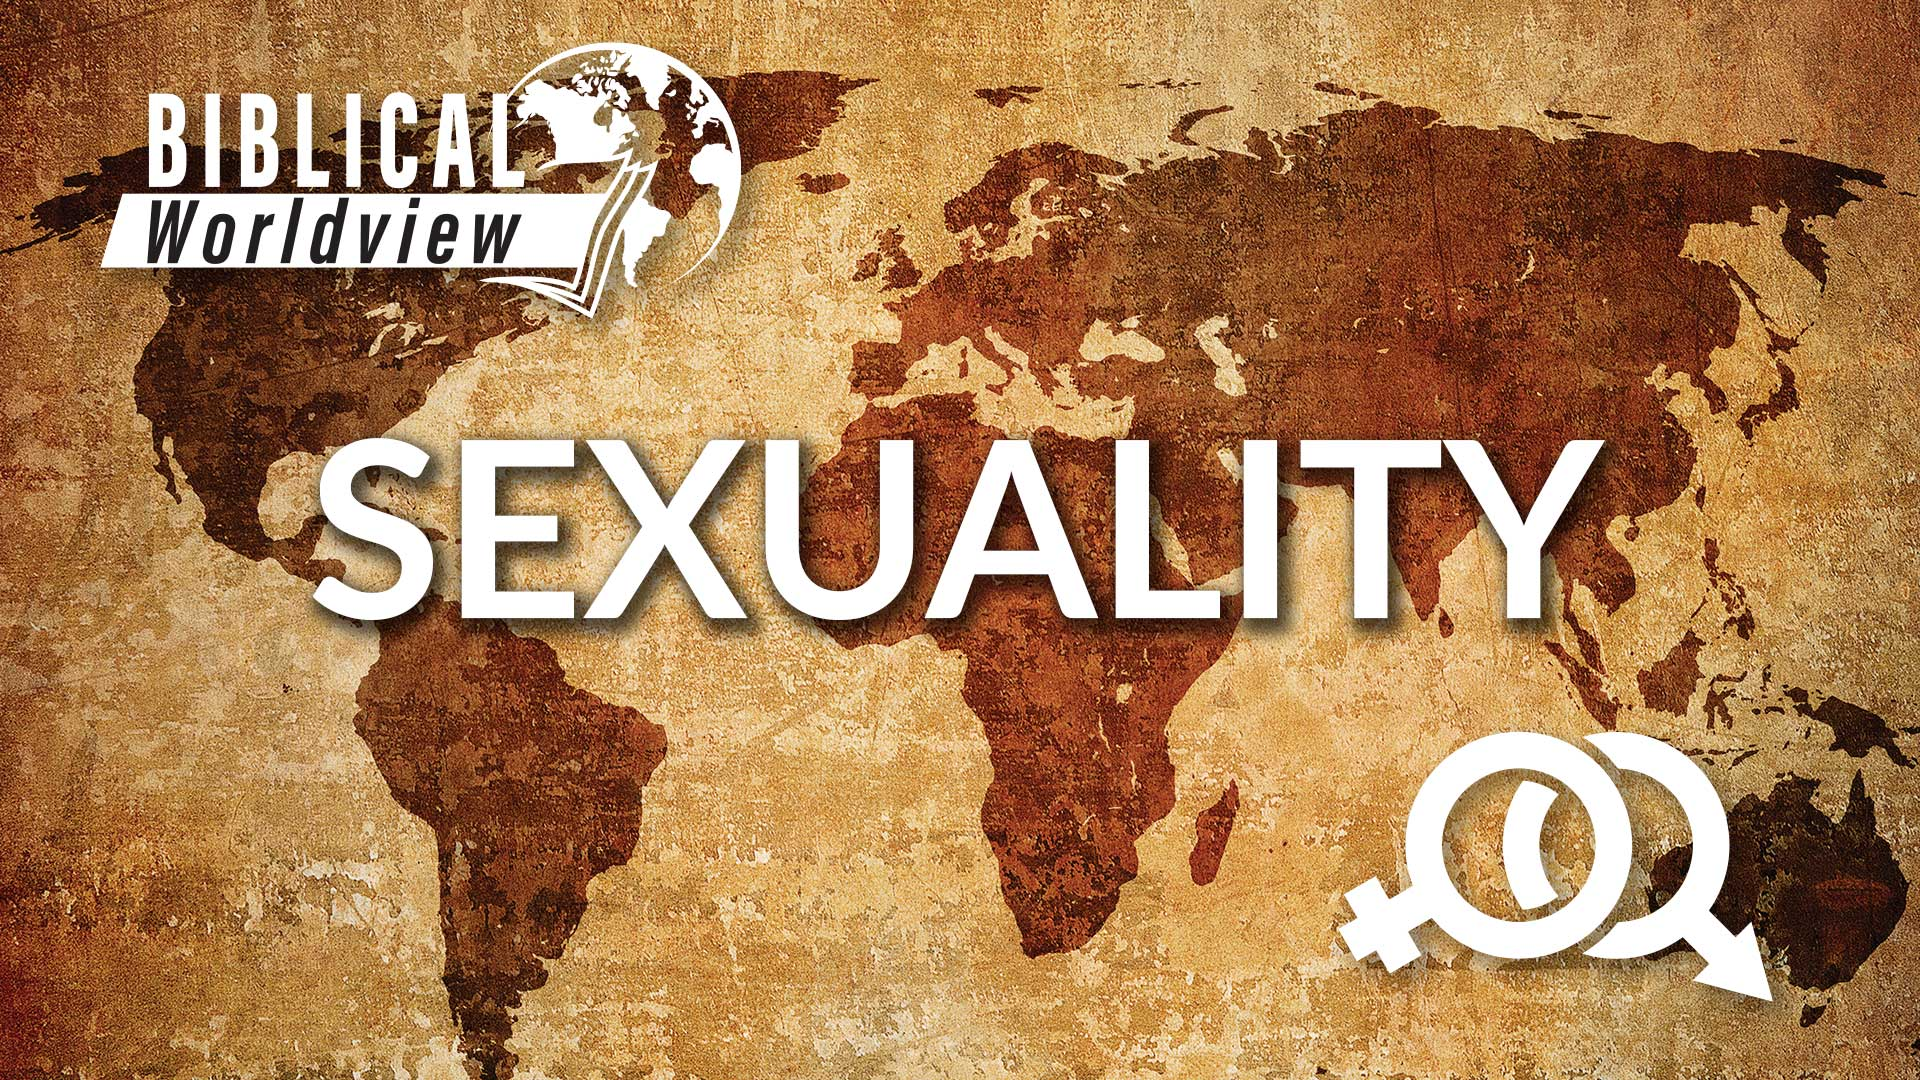 Biblical Worldview Sexuality